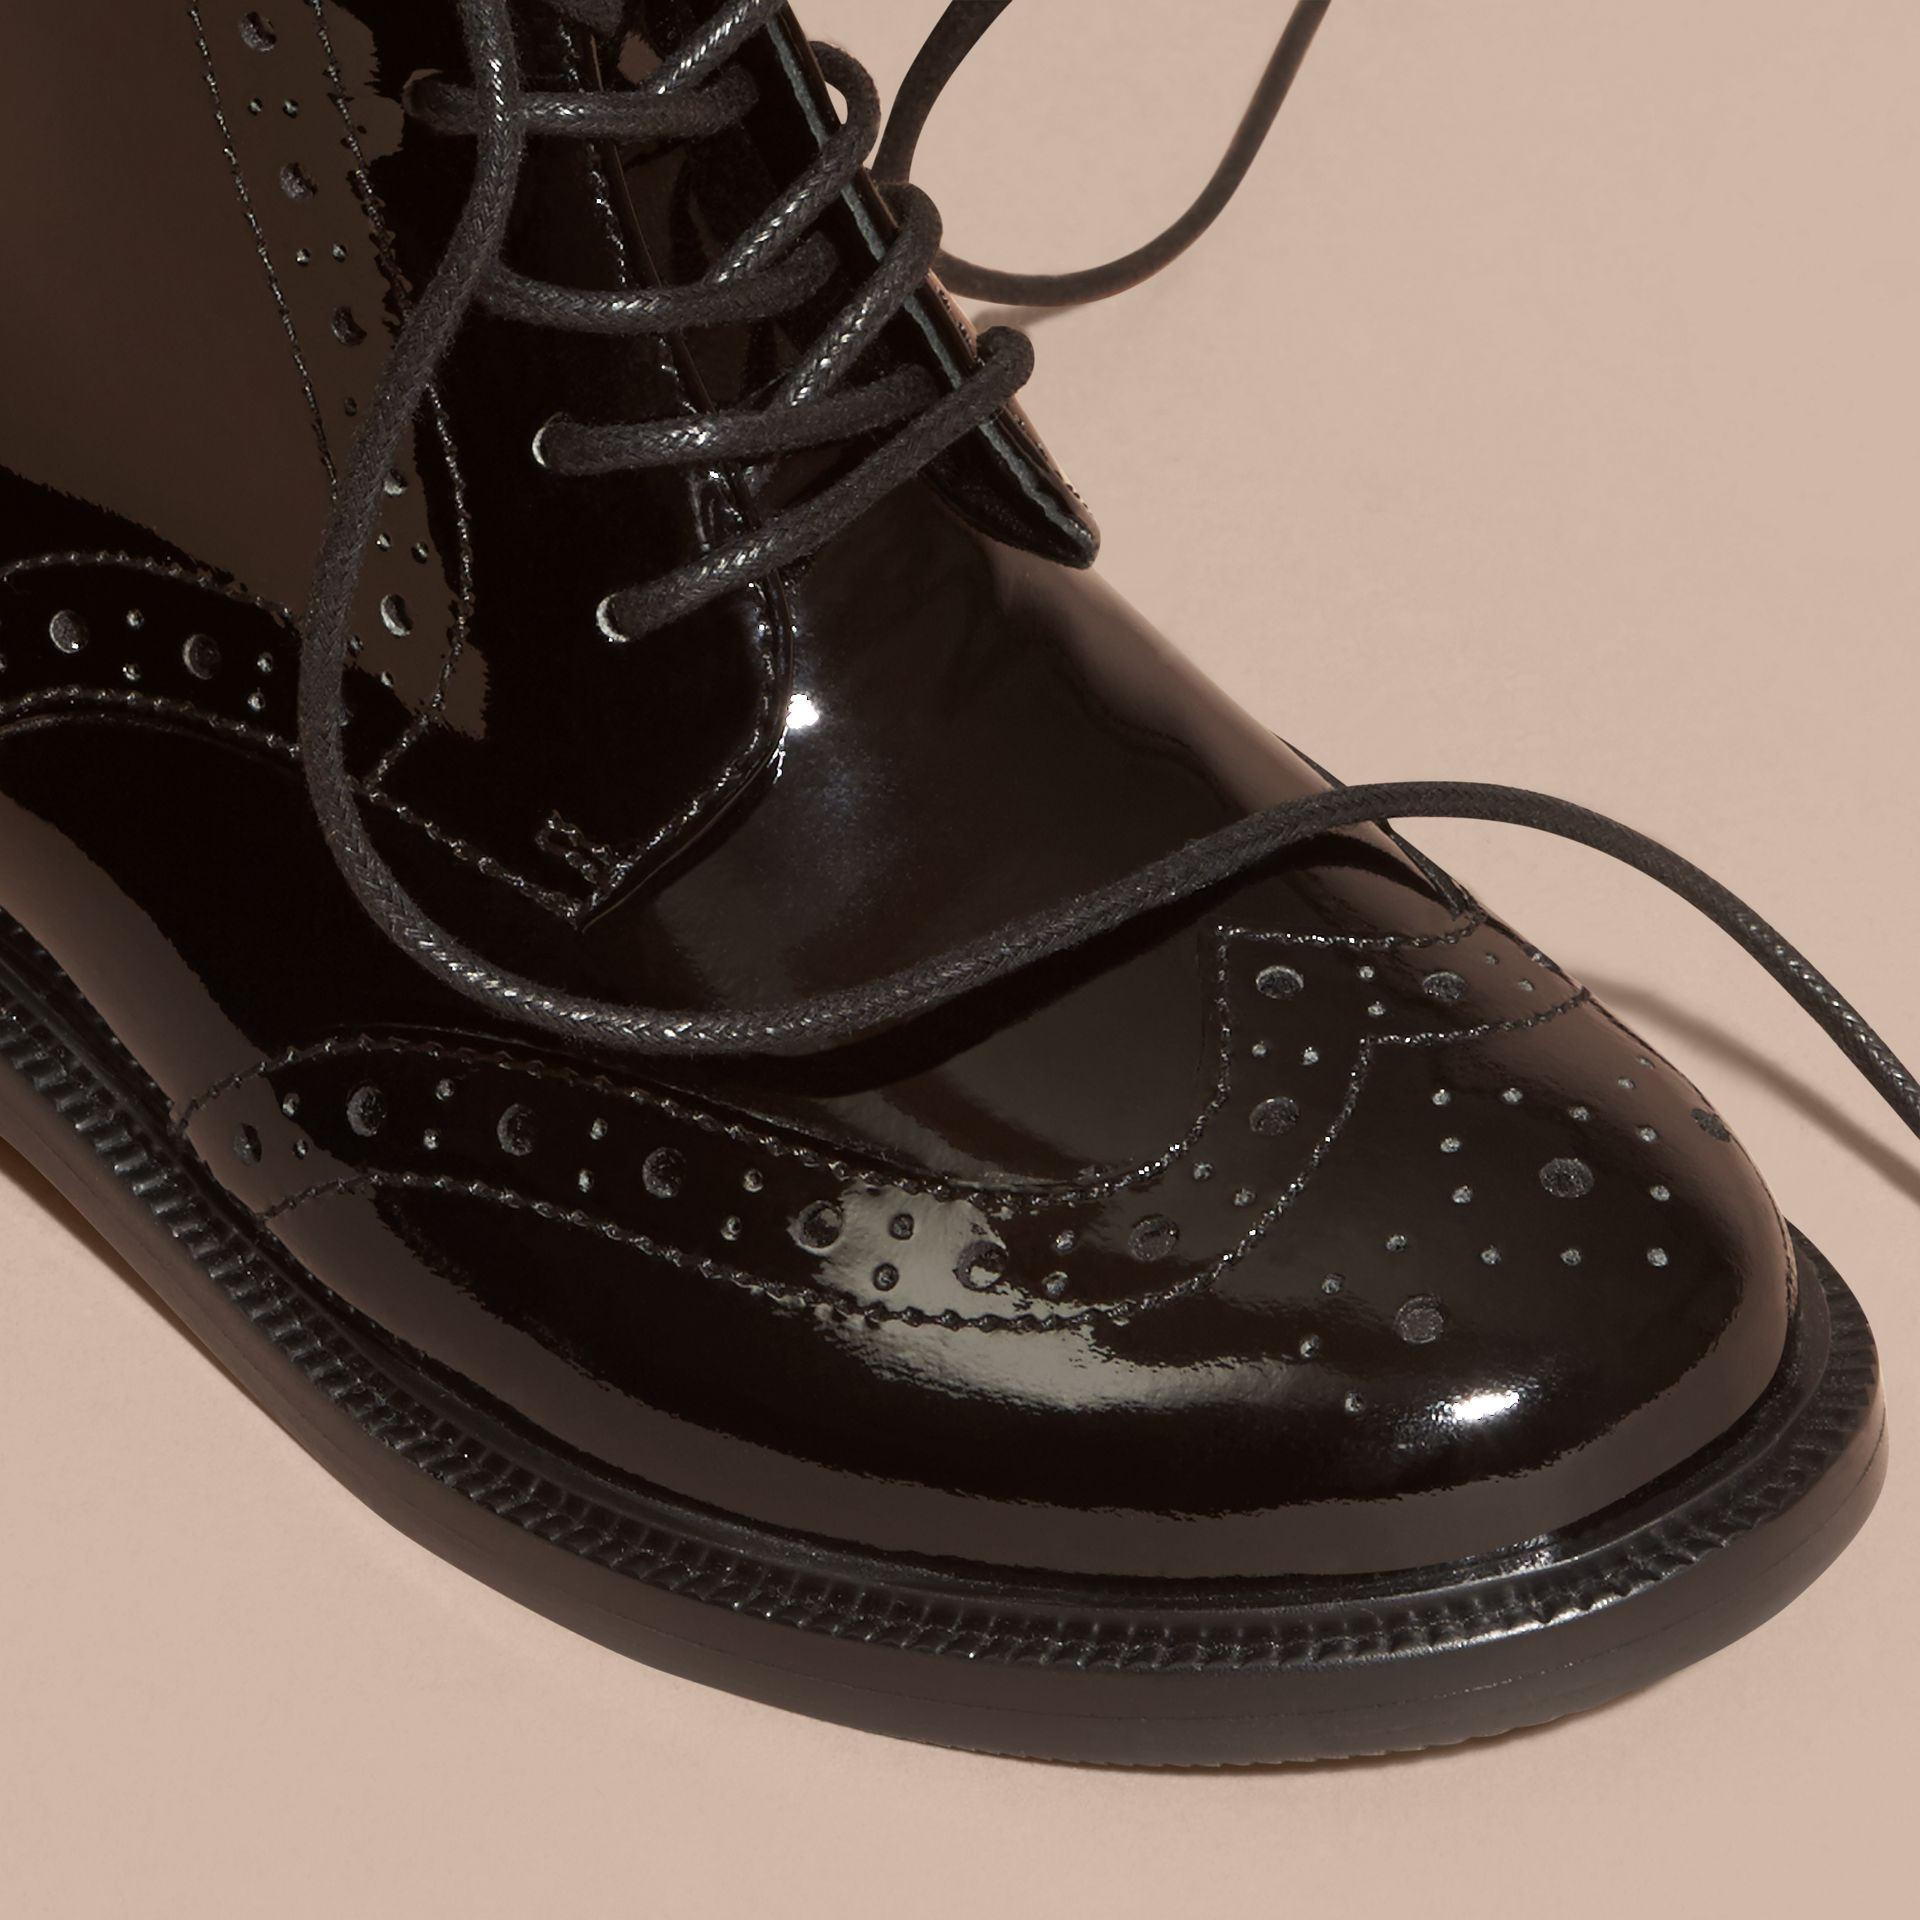 Noir Bottines Richelieu à lacets en cuir verni - photo de la galerie 3